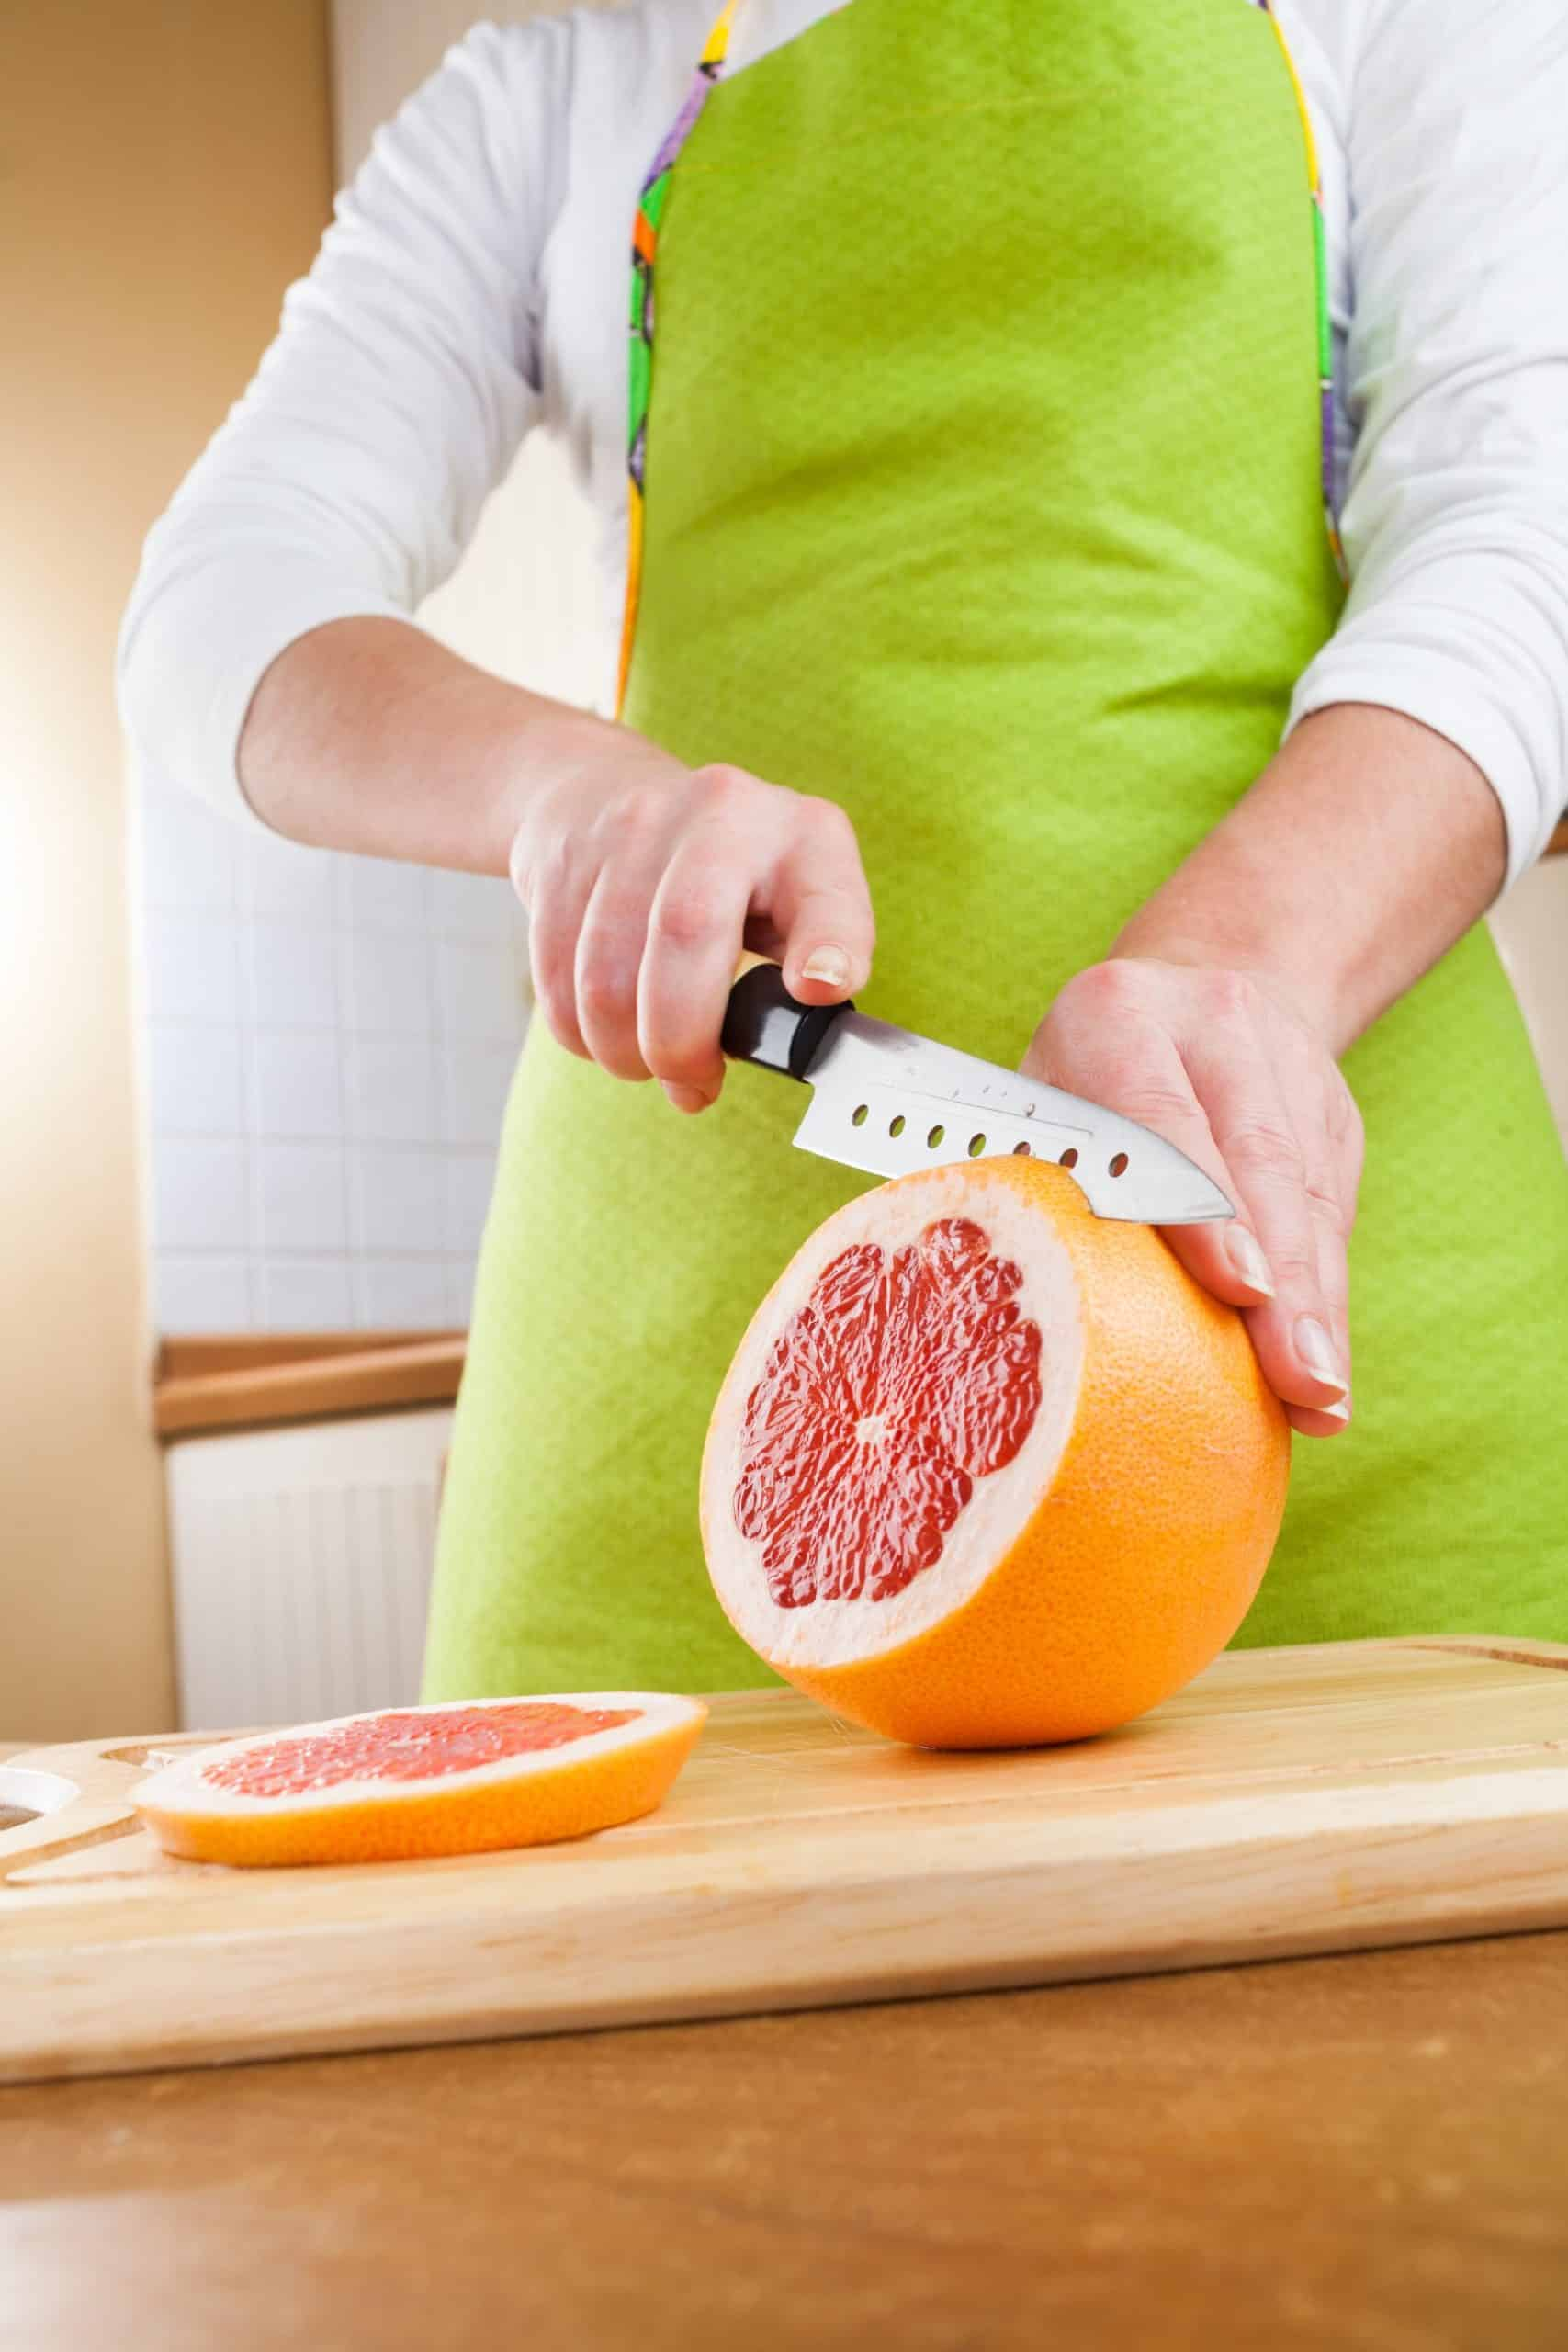 How Does The Grapefruit Diet Help?